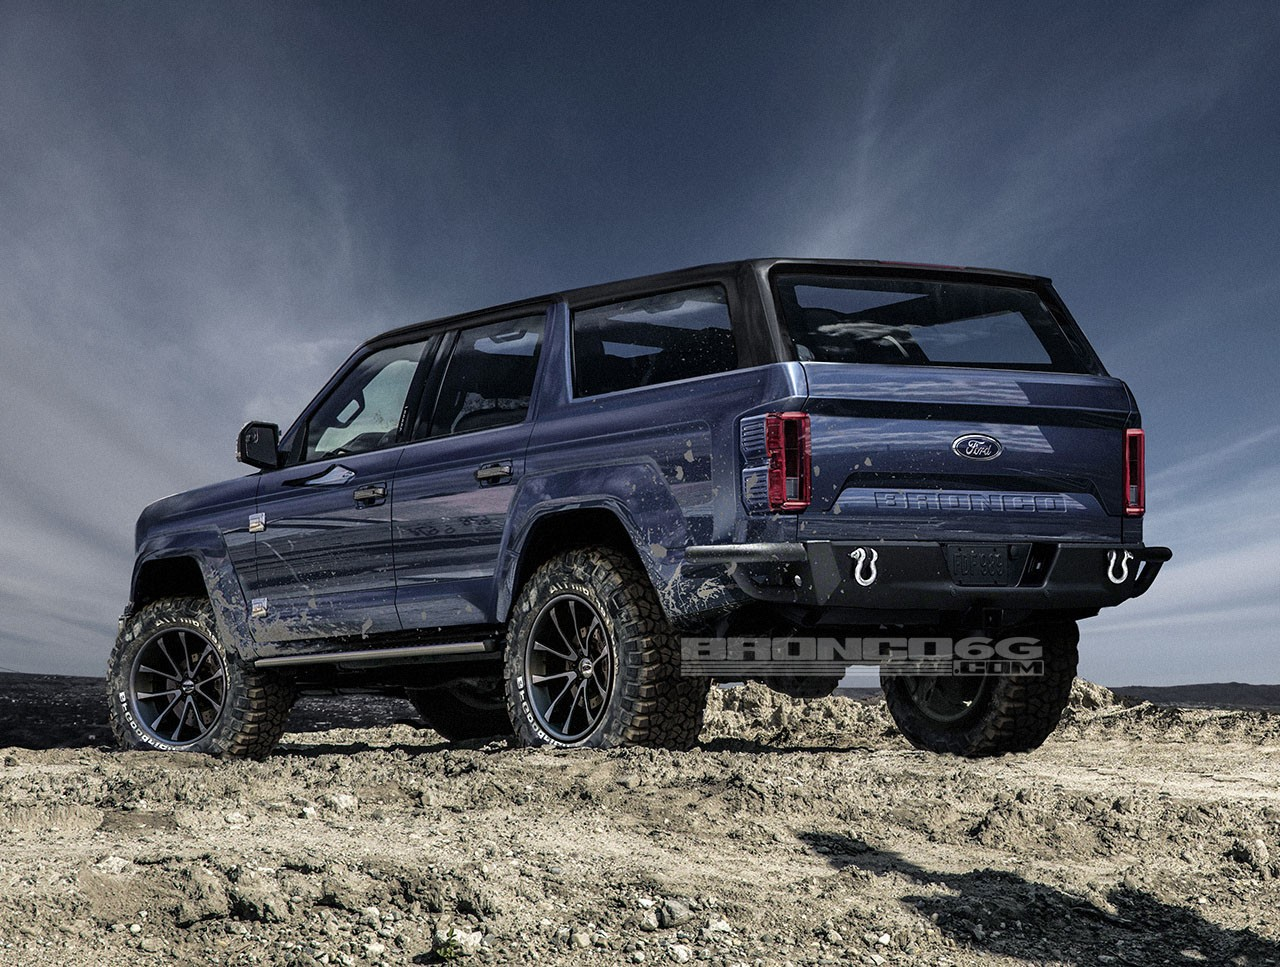 Ford Bronco Raptor >> 2020 Ford Bronco Shows Jeep Wrangler Proportions, Tailgate-Mounted Spare Wheel - autoevolution